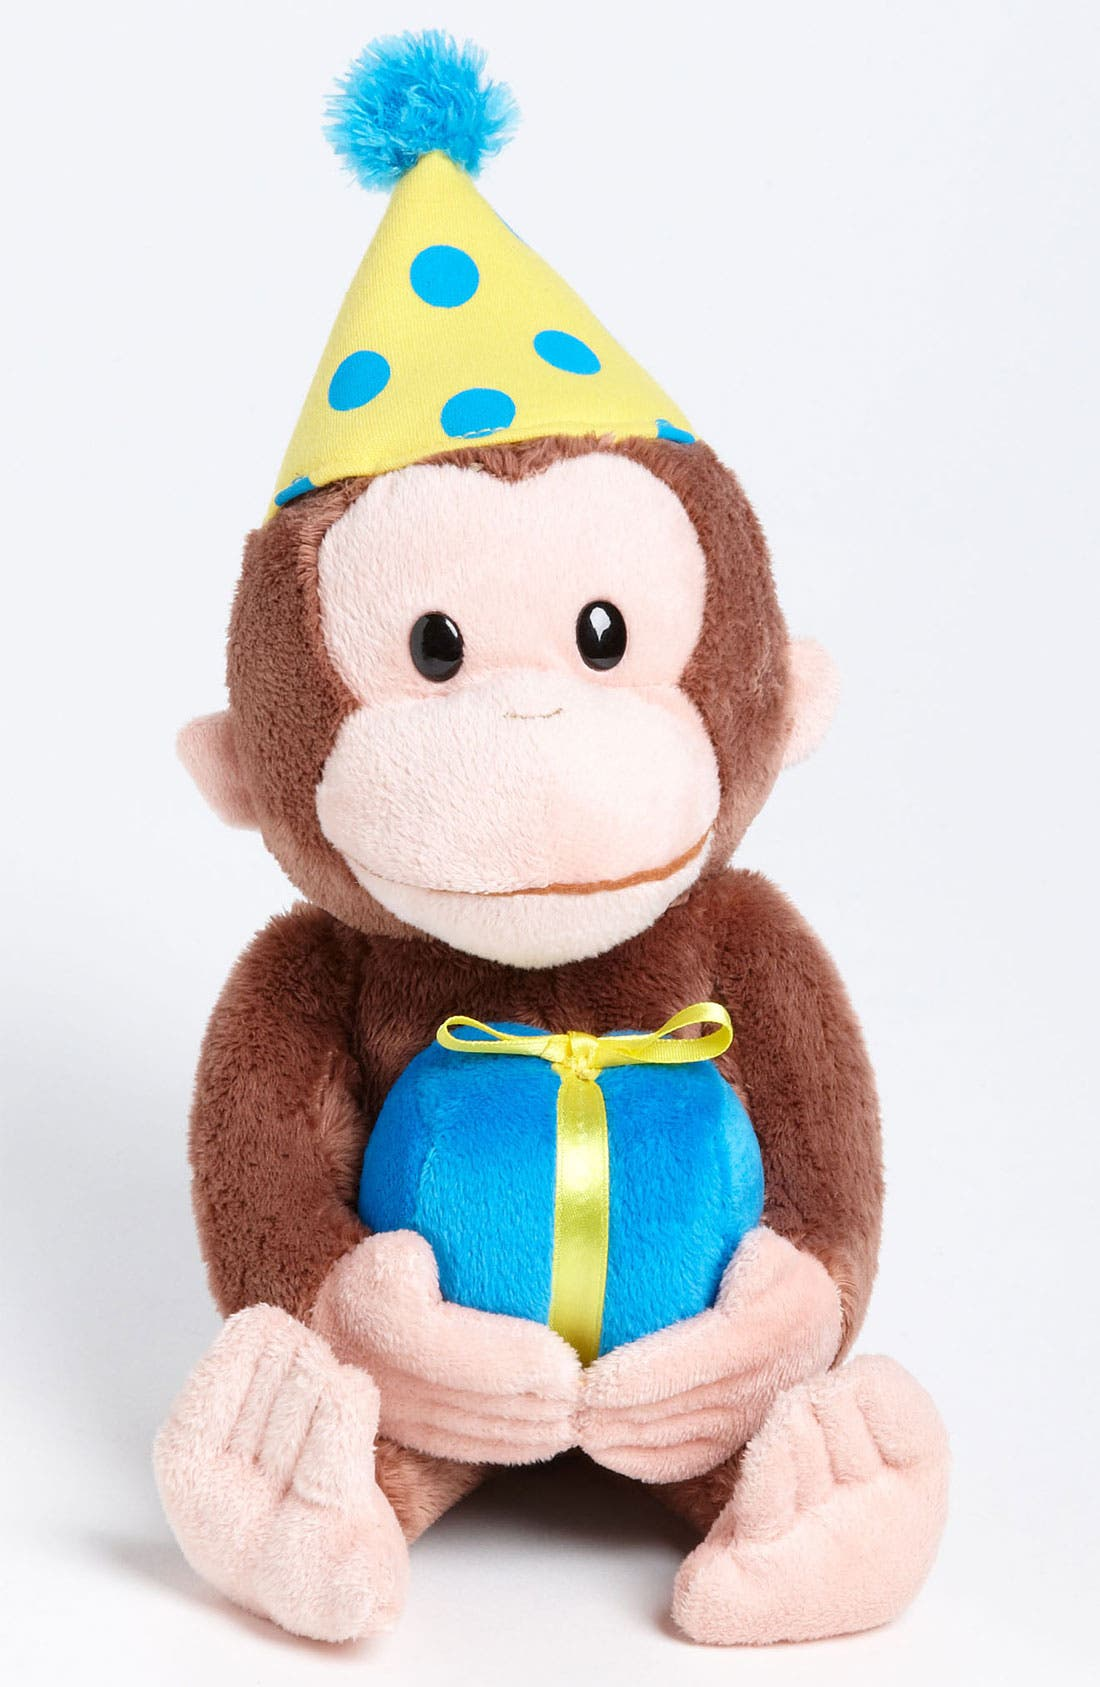 Alternate Image 1 Selected - Gund 'Curious George® - Happy Birthday' Stuffed Animal